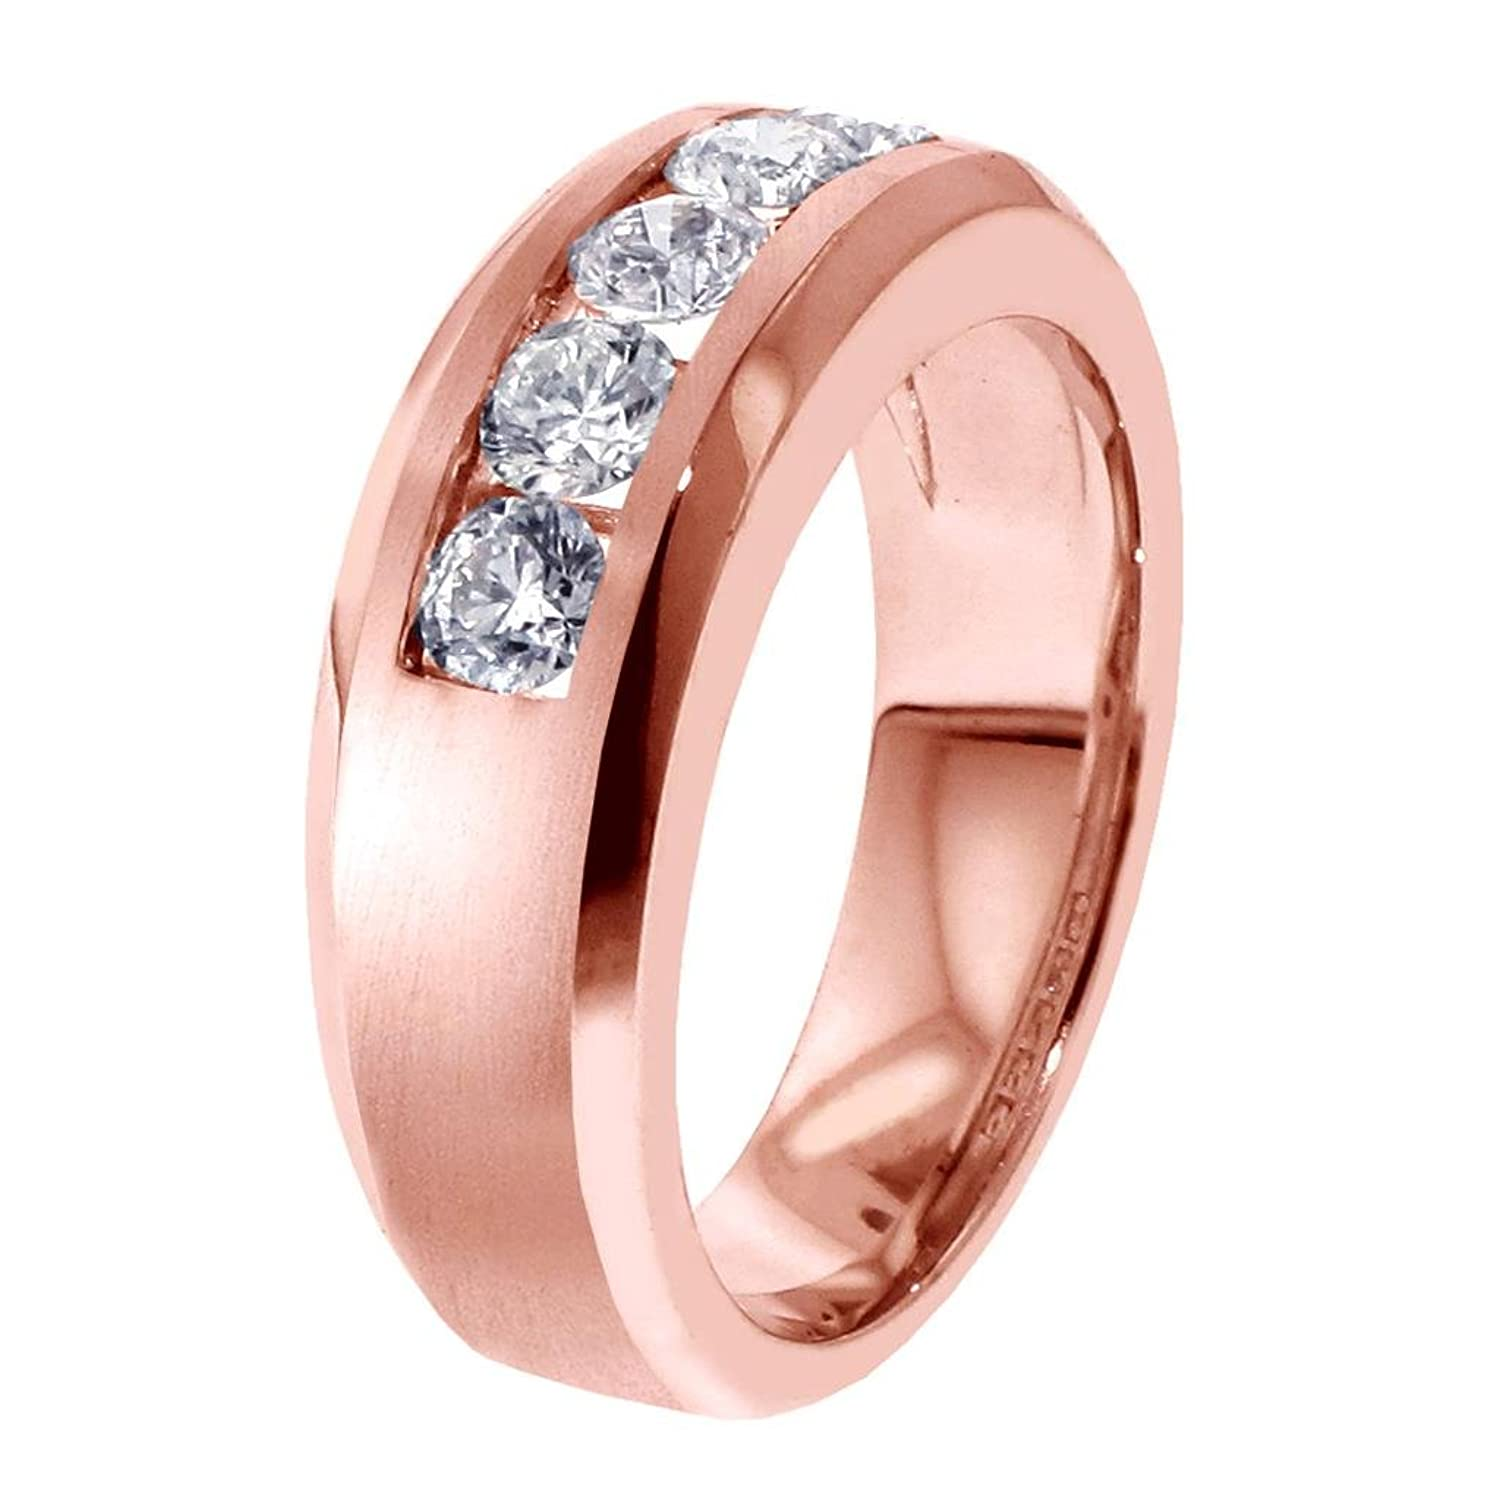 1.00 CT TW 5-Stone Channel Set Diamond Mens Wedding Ring in 14k Rose ...